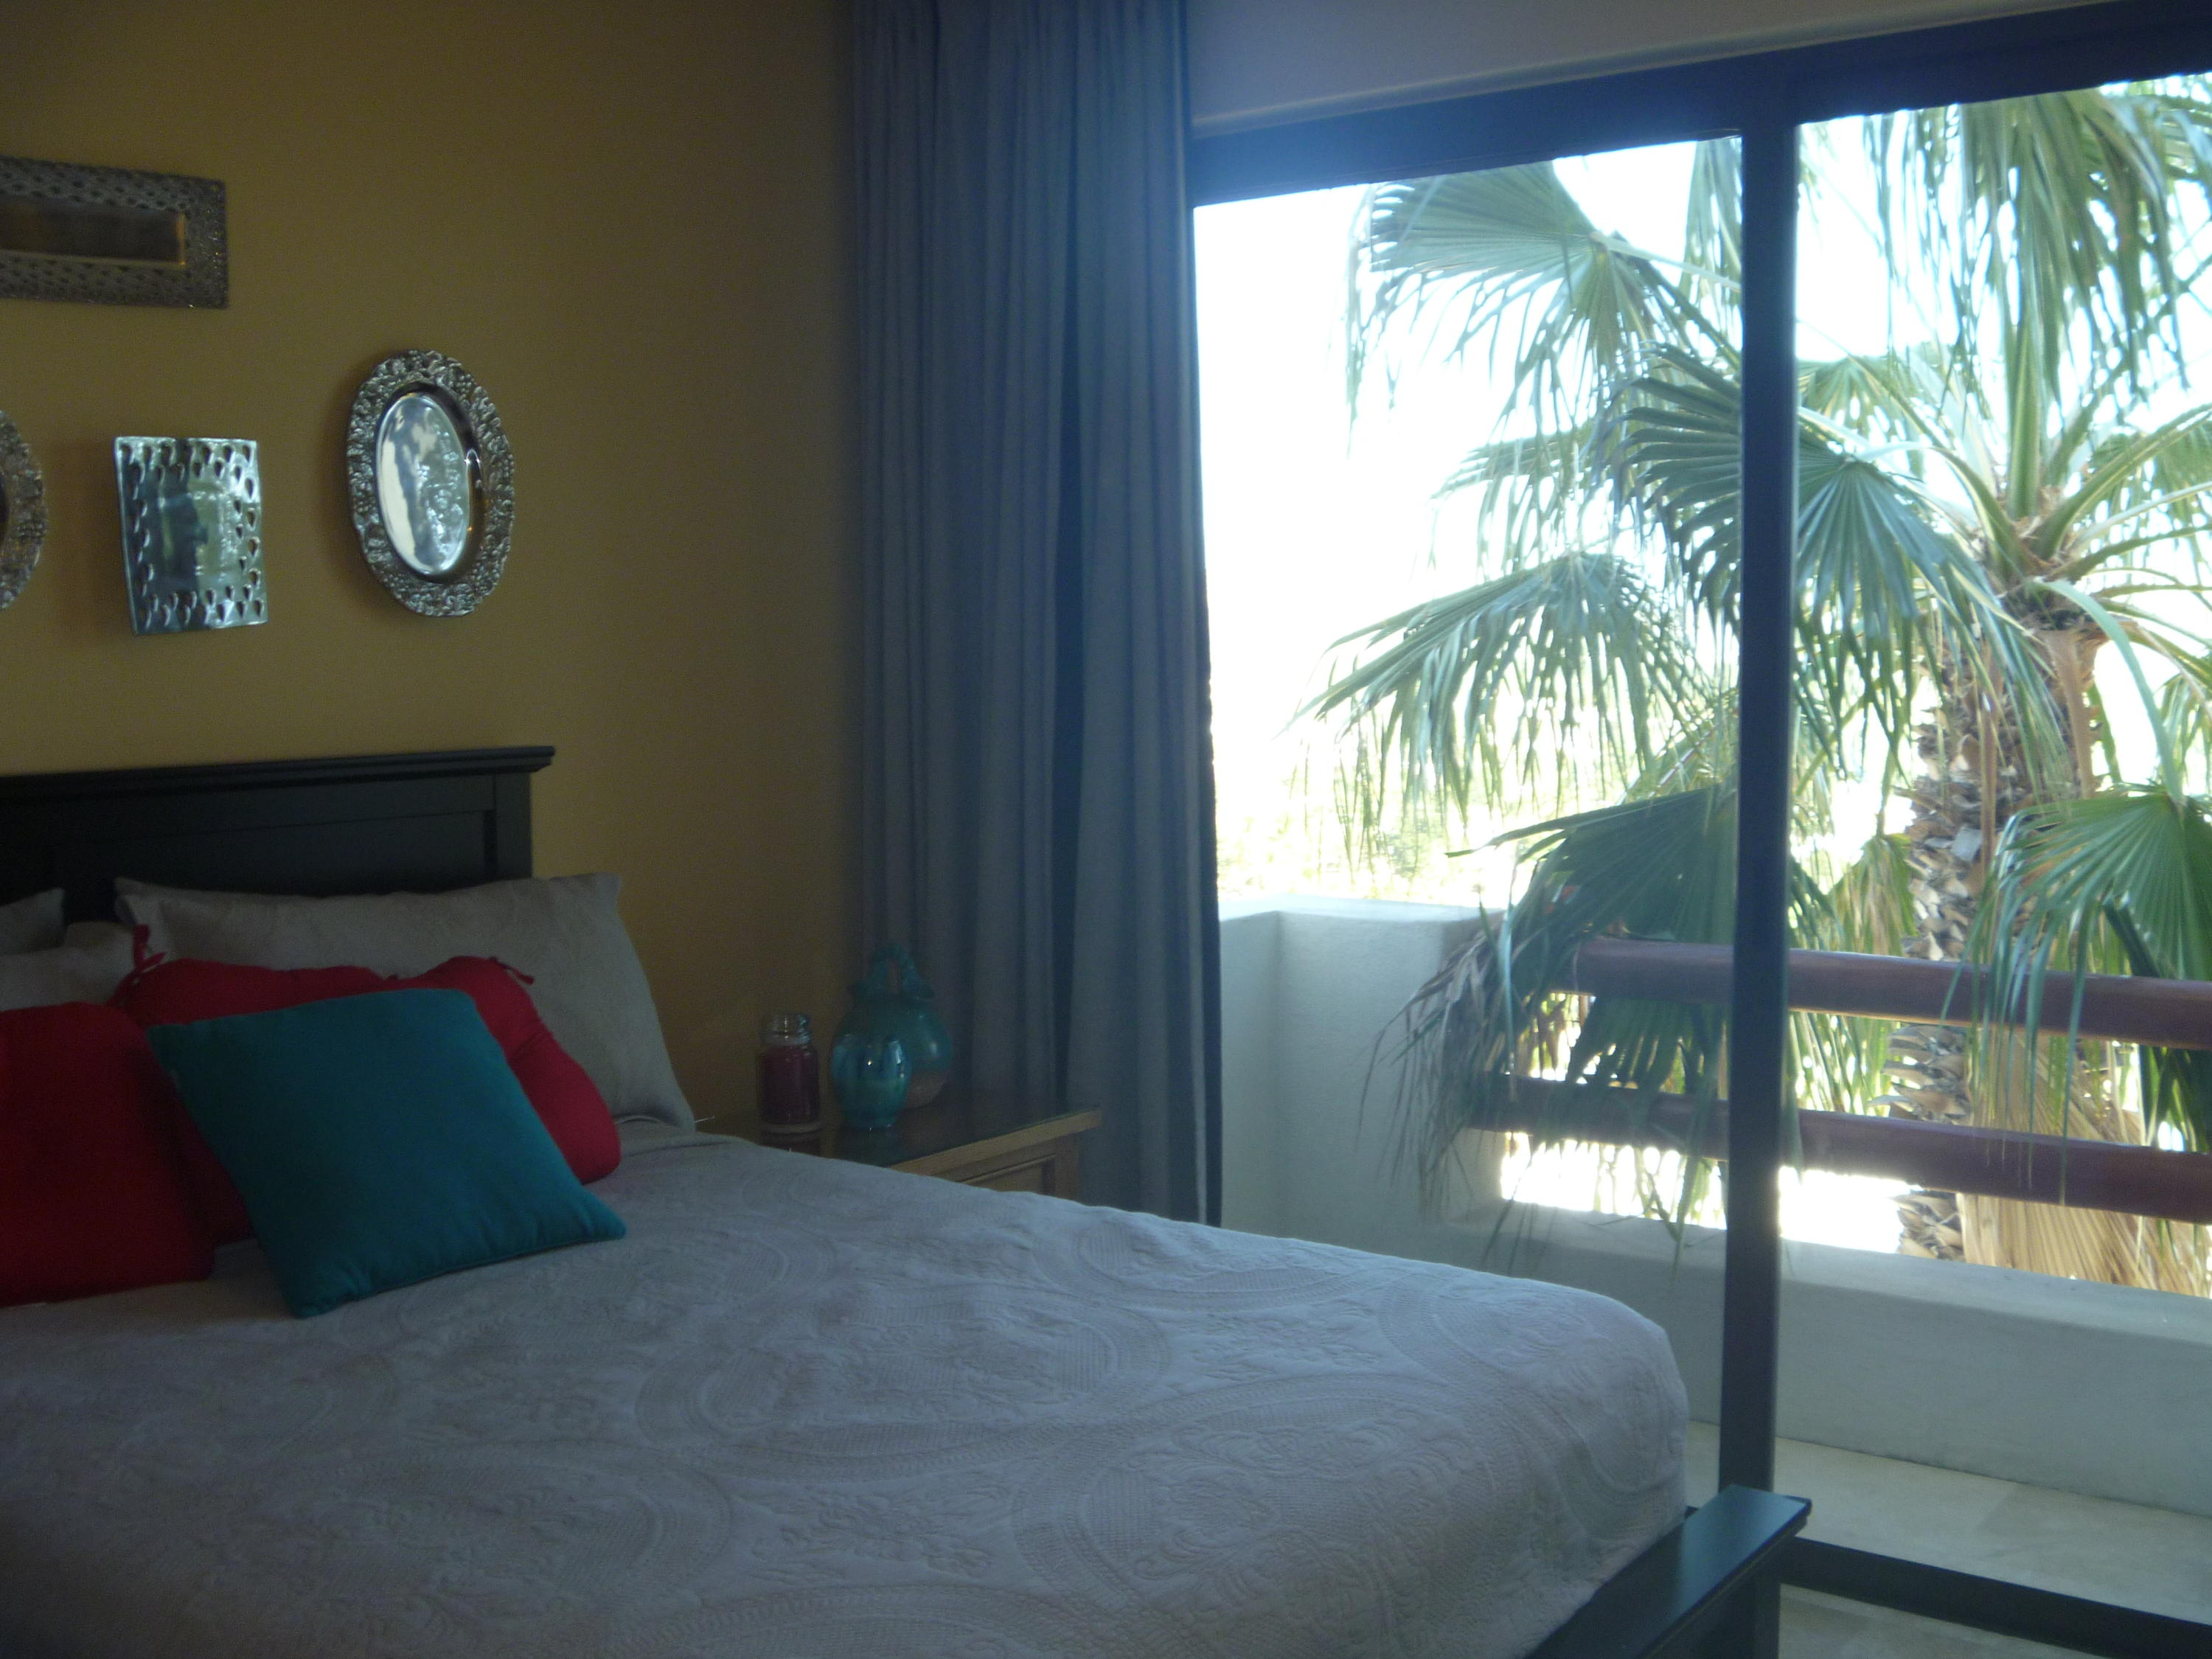 San Jose del Cabo, 2 Bedrooms Bedrooms, 5 Rooms Rooms,2 BathroomsBathrooms,Condo,For Sale,Paseo de Las Misiones,19-53